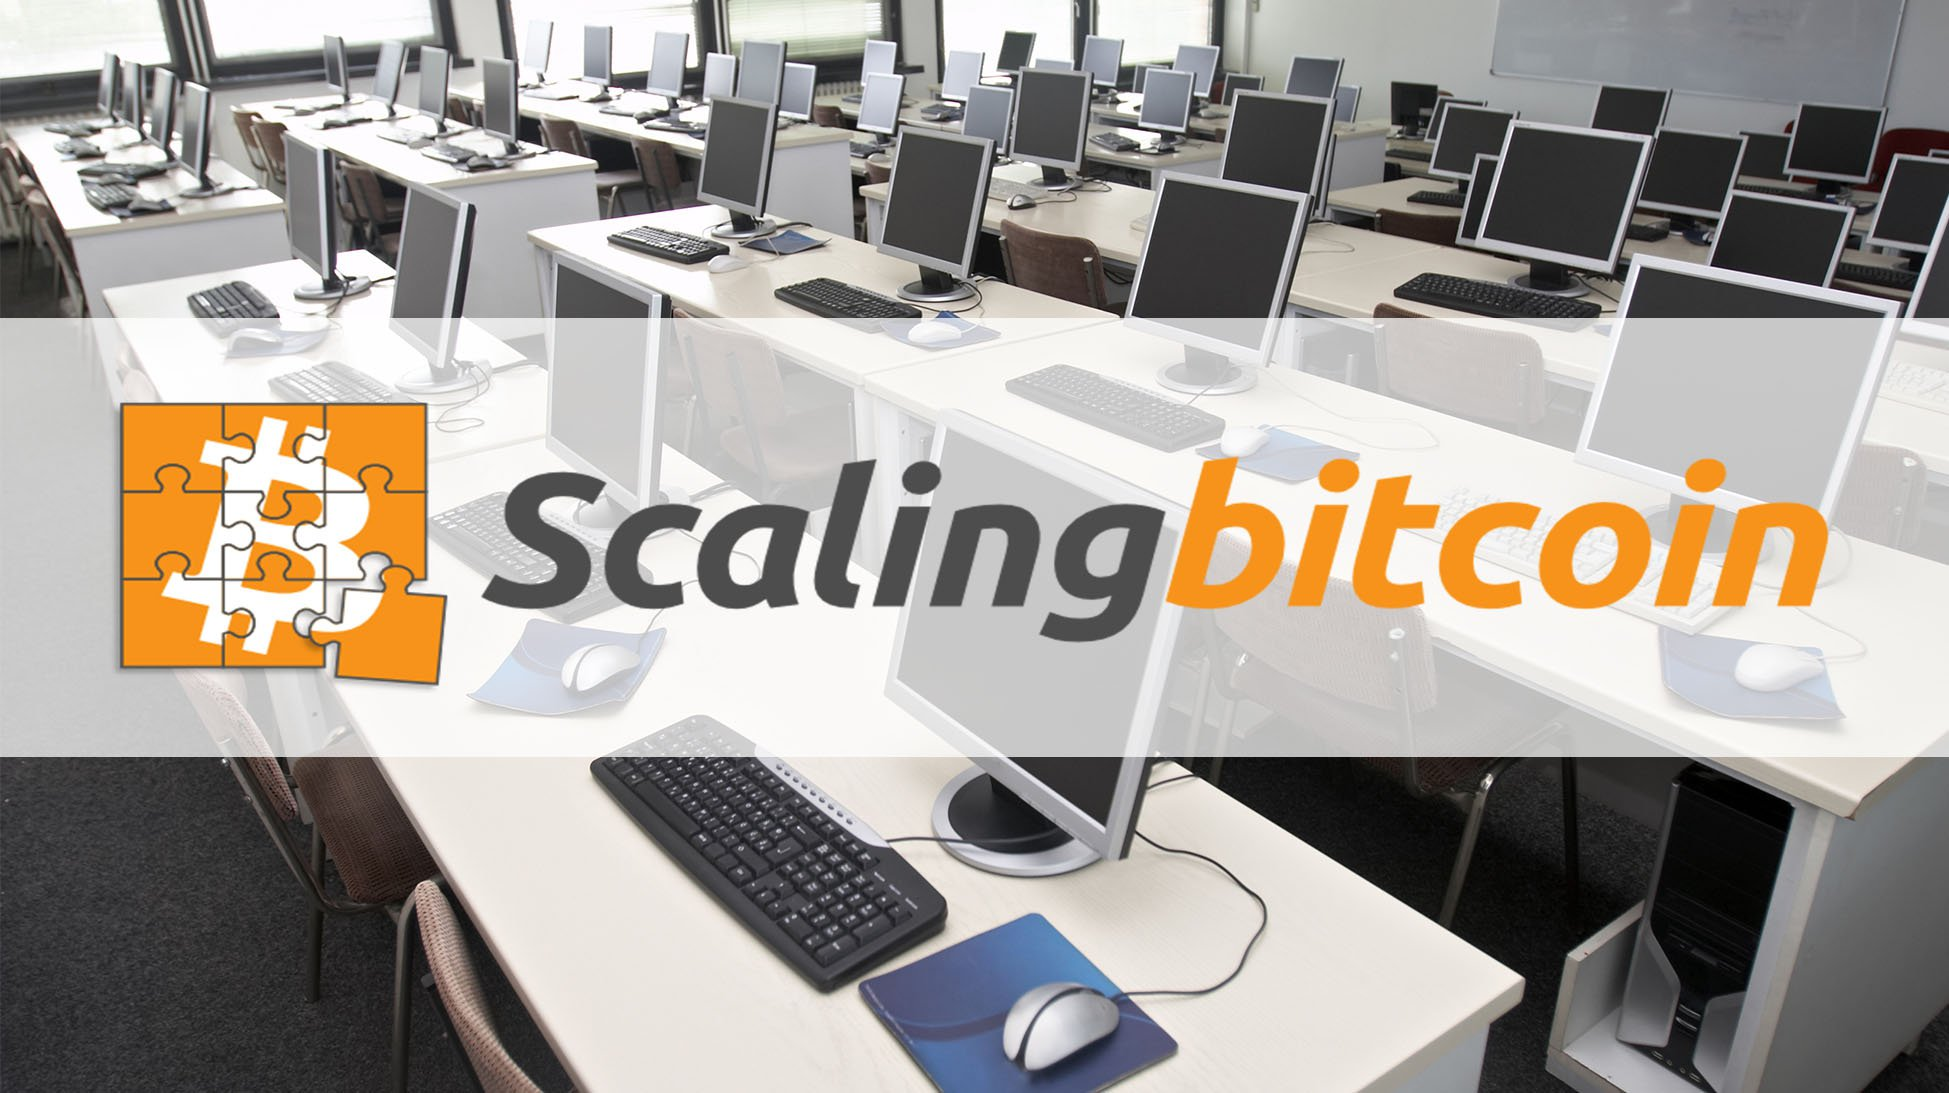 Scaling Bitcoin Announces This Year's Program and a New Developer Bootcamp